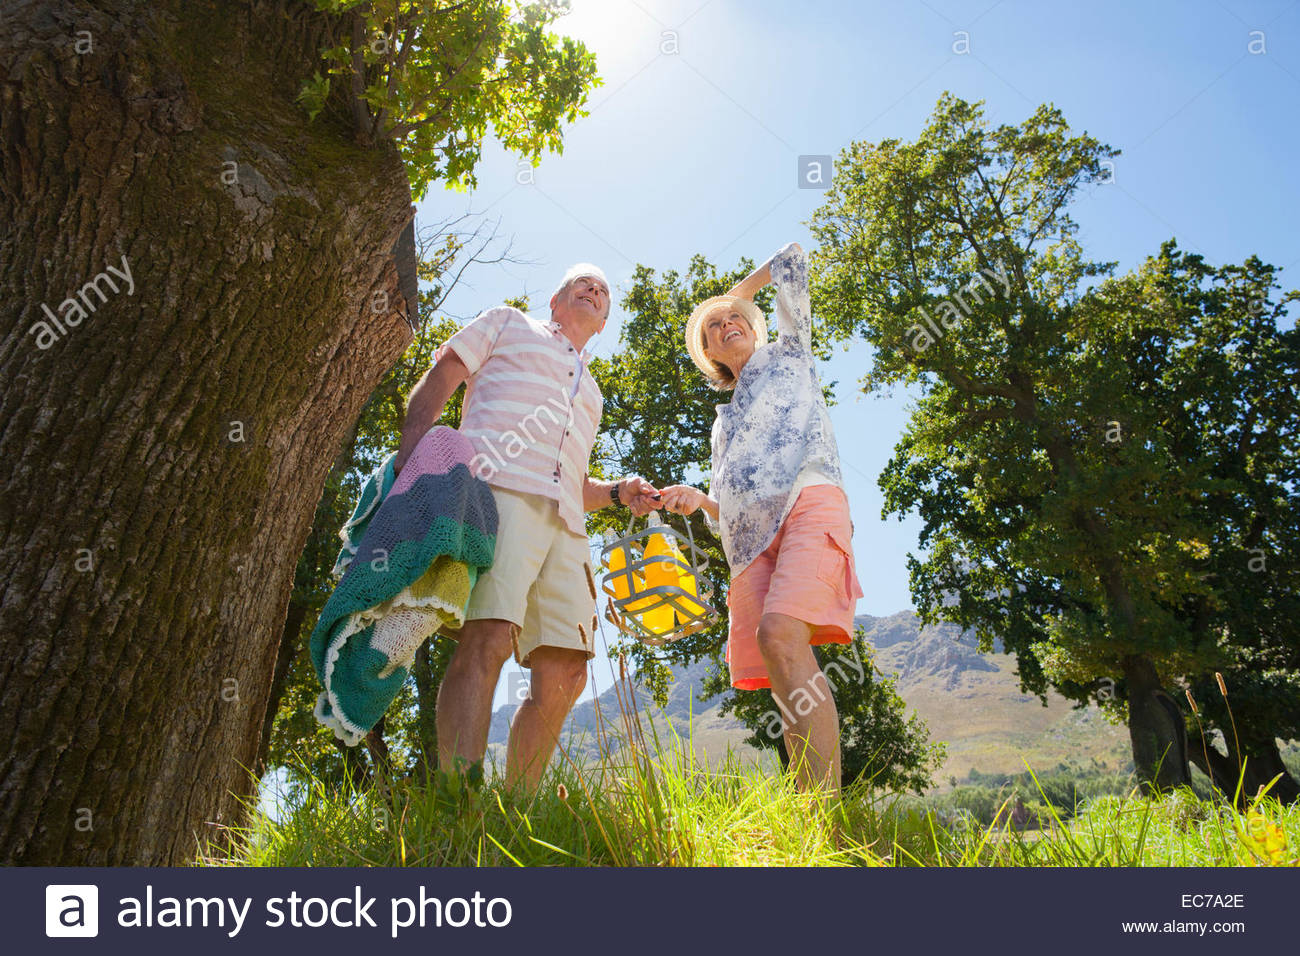 Senior couple with picnic bottles in countryside - Stock Image